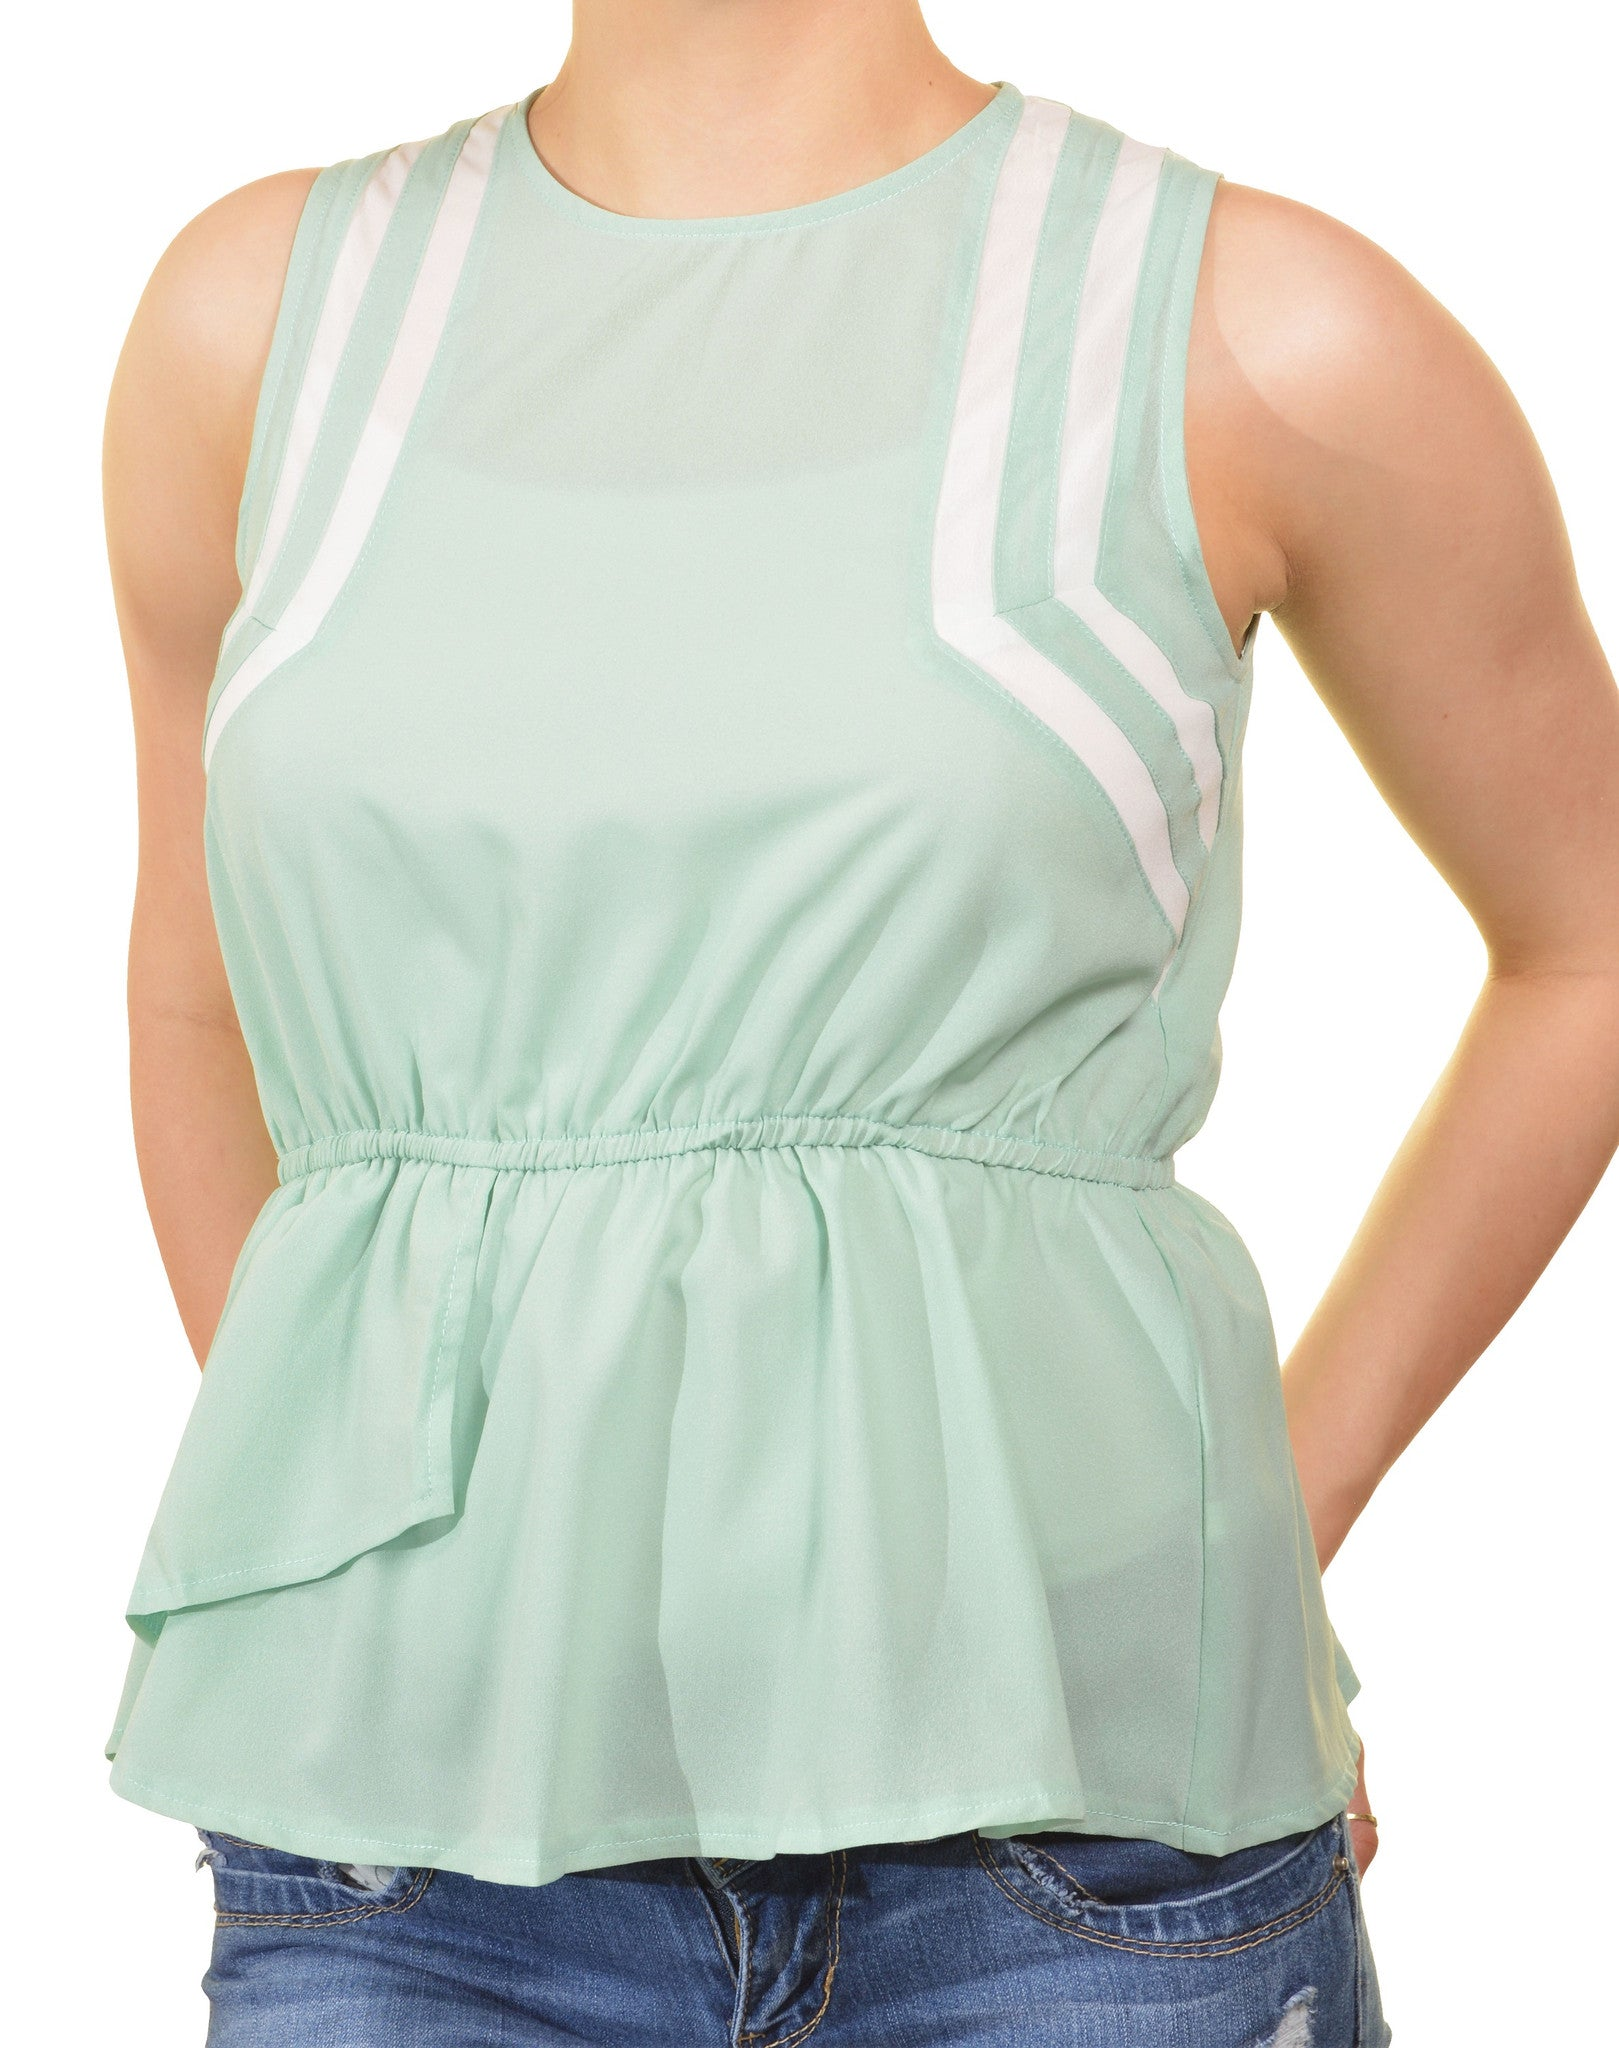 Grifflin Paris Colorblocked Peplum Shirt (Mint Green)